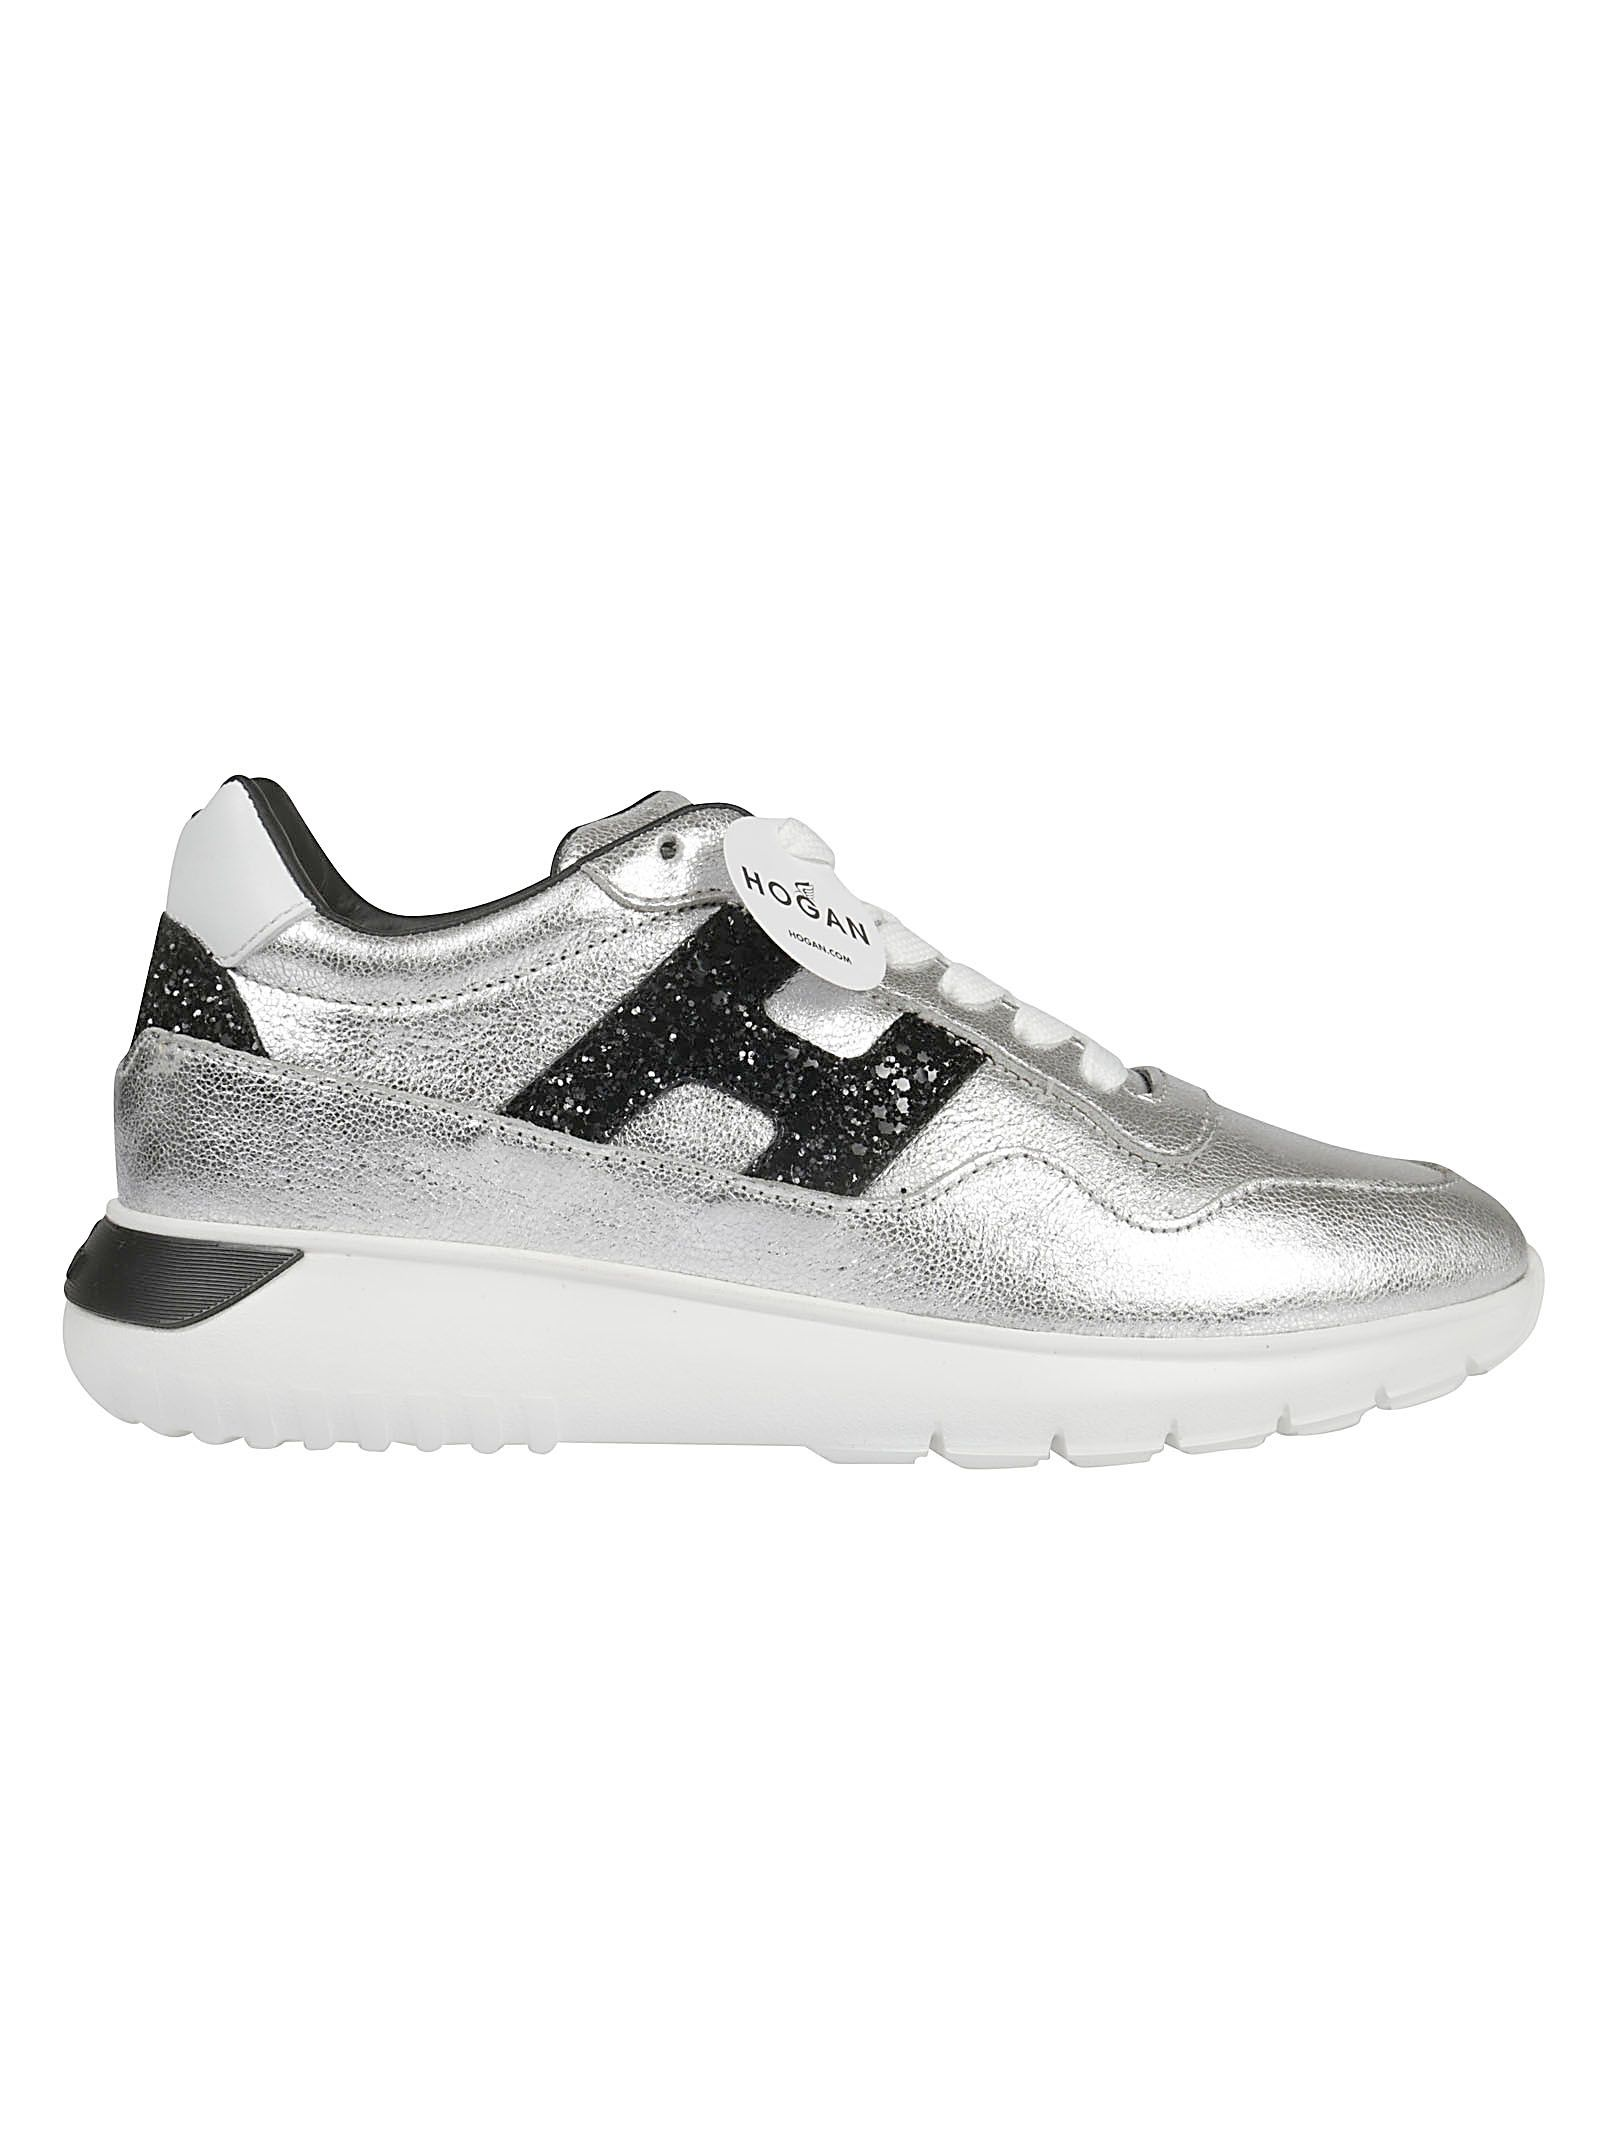 Hogan H371 Interactive Sneakers Best Prices Cheap Price Outlet Pick A Best Real Online kTWmnhBqEX